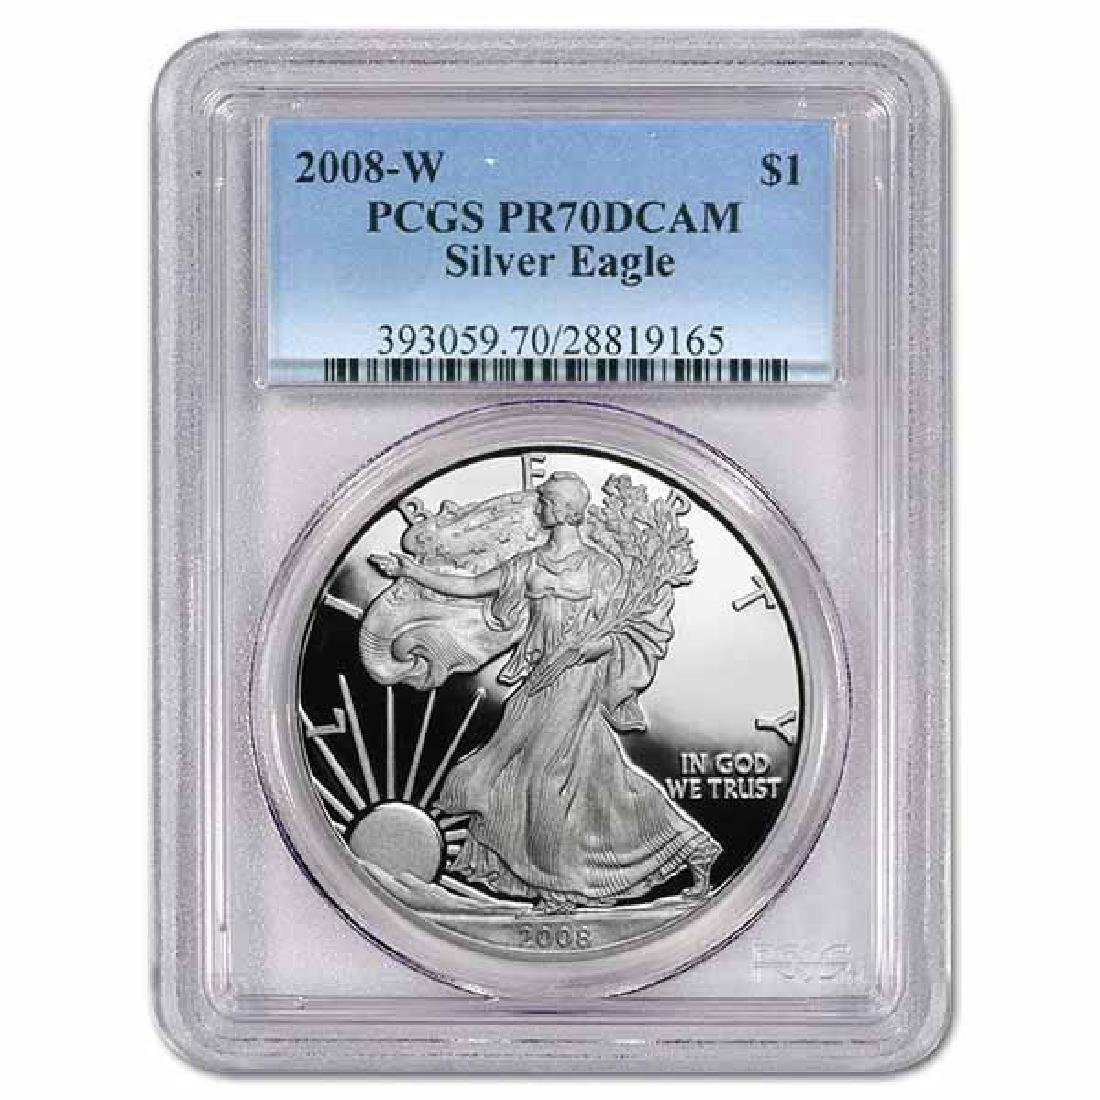 Certified Proof Silver Eagle 2008 PR70DCAM PCGS